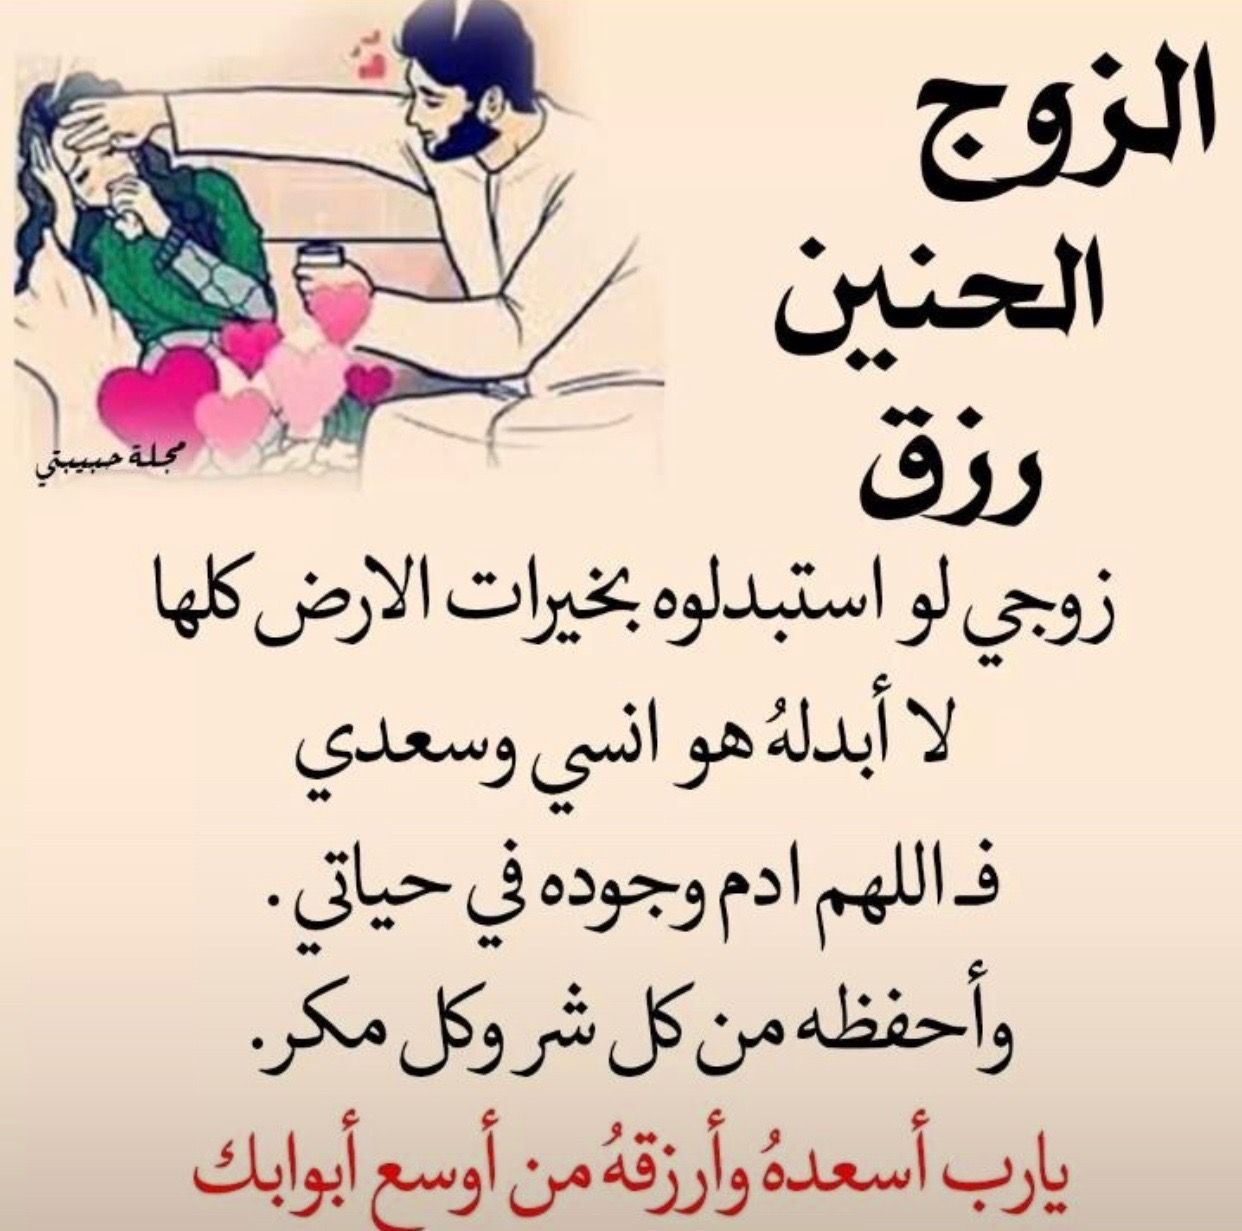 Pin By Moona Alattes On صوري Arabic Typing Arabic Calligraphy Arabic